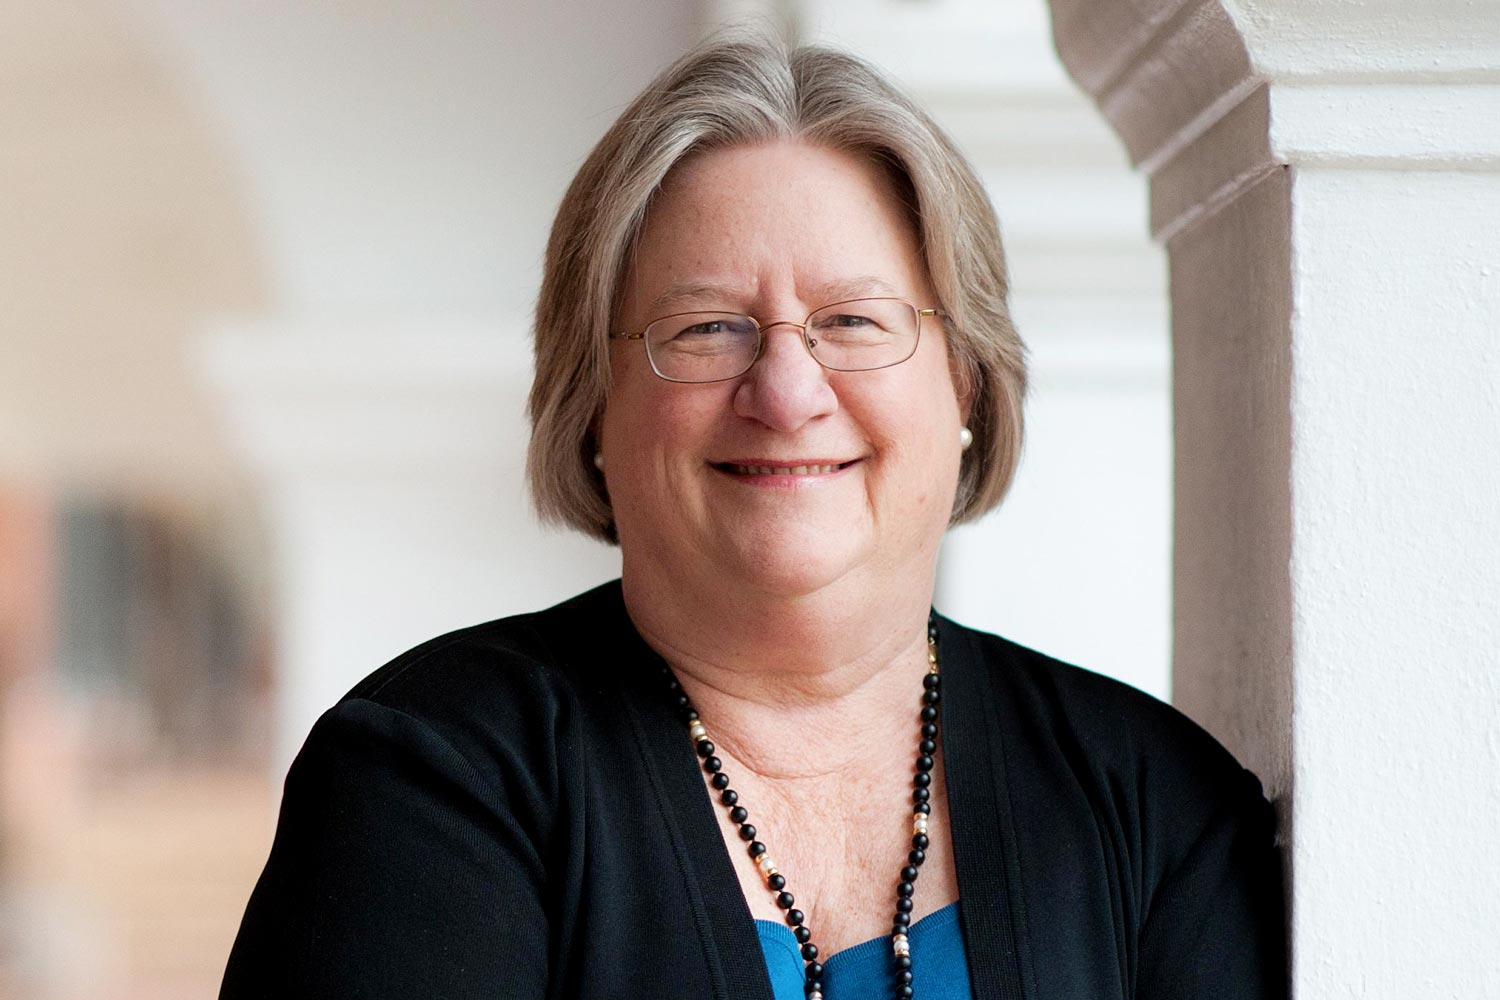 Psychology professor Charlotte Patterson was named chair when Women, Gender and Sexuality became a department.